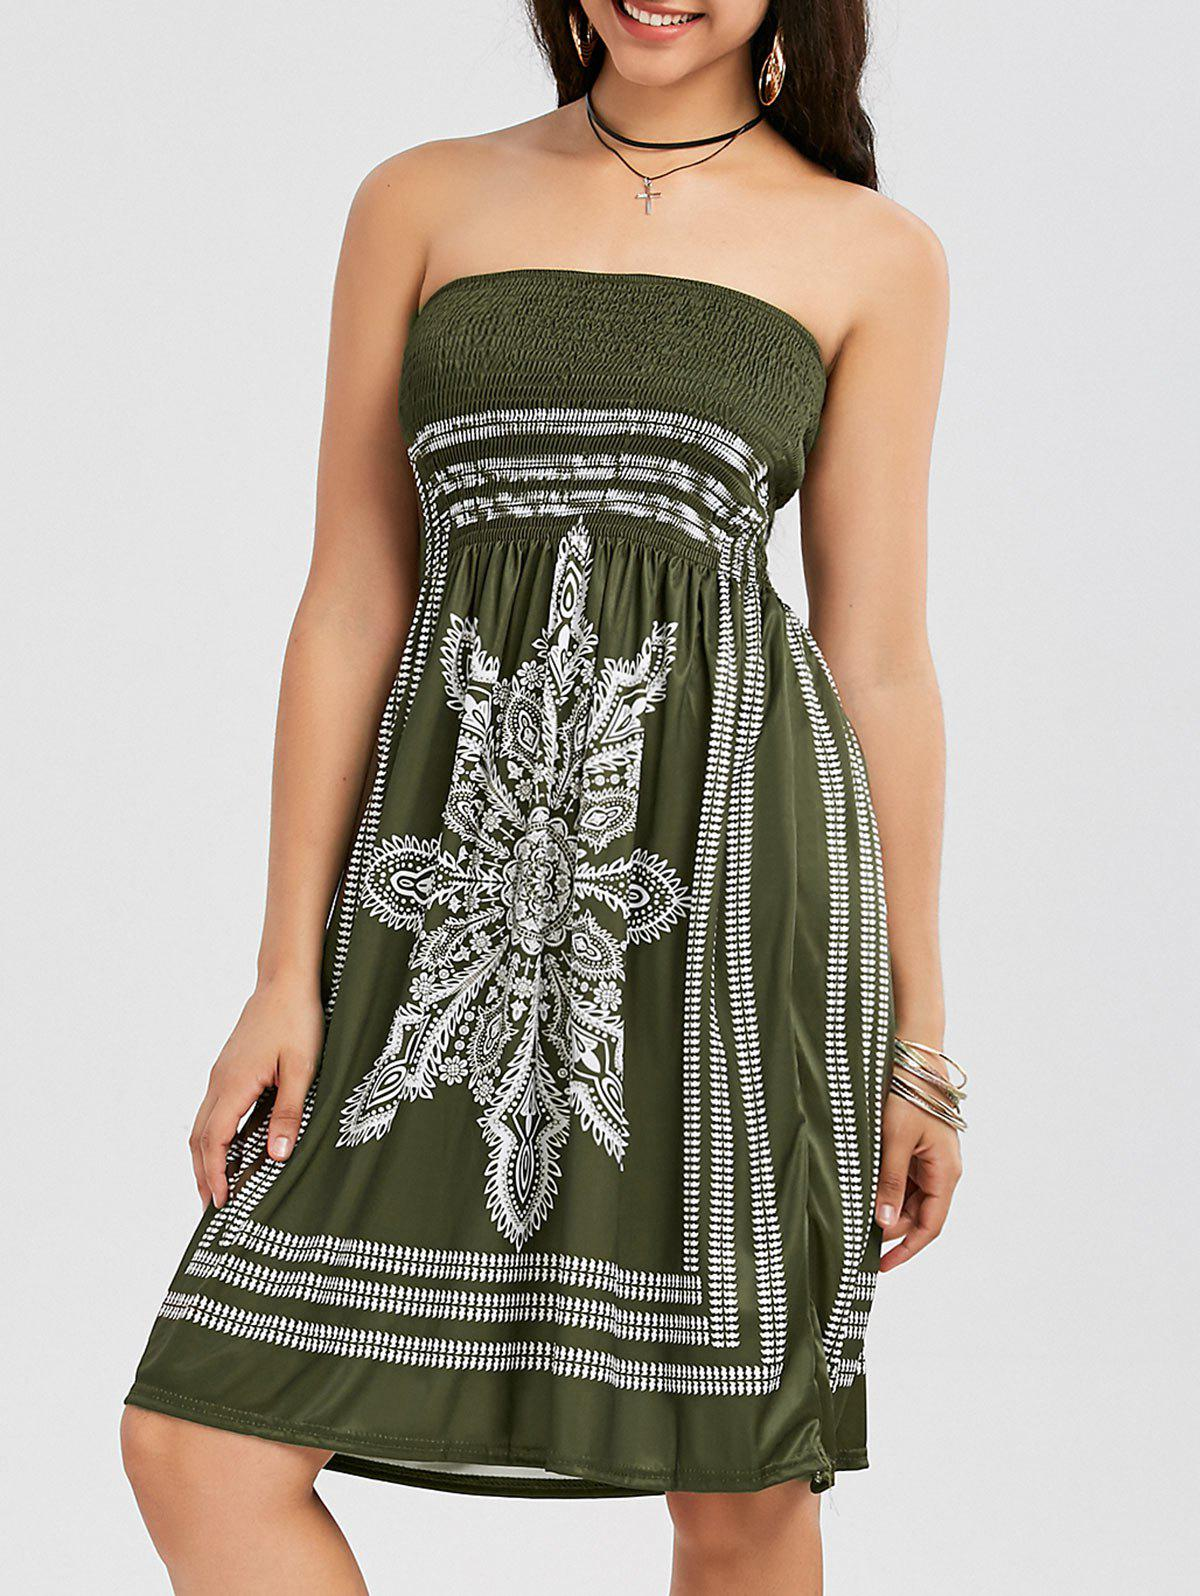 Bohemian Tribal Print Bandeau Dress - ARMY GREEN XL